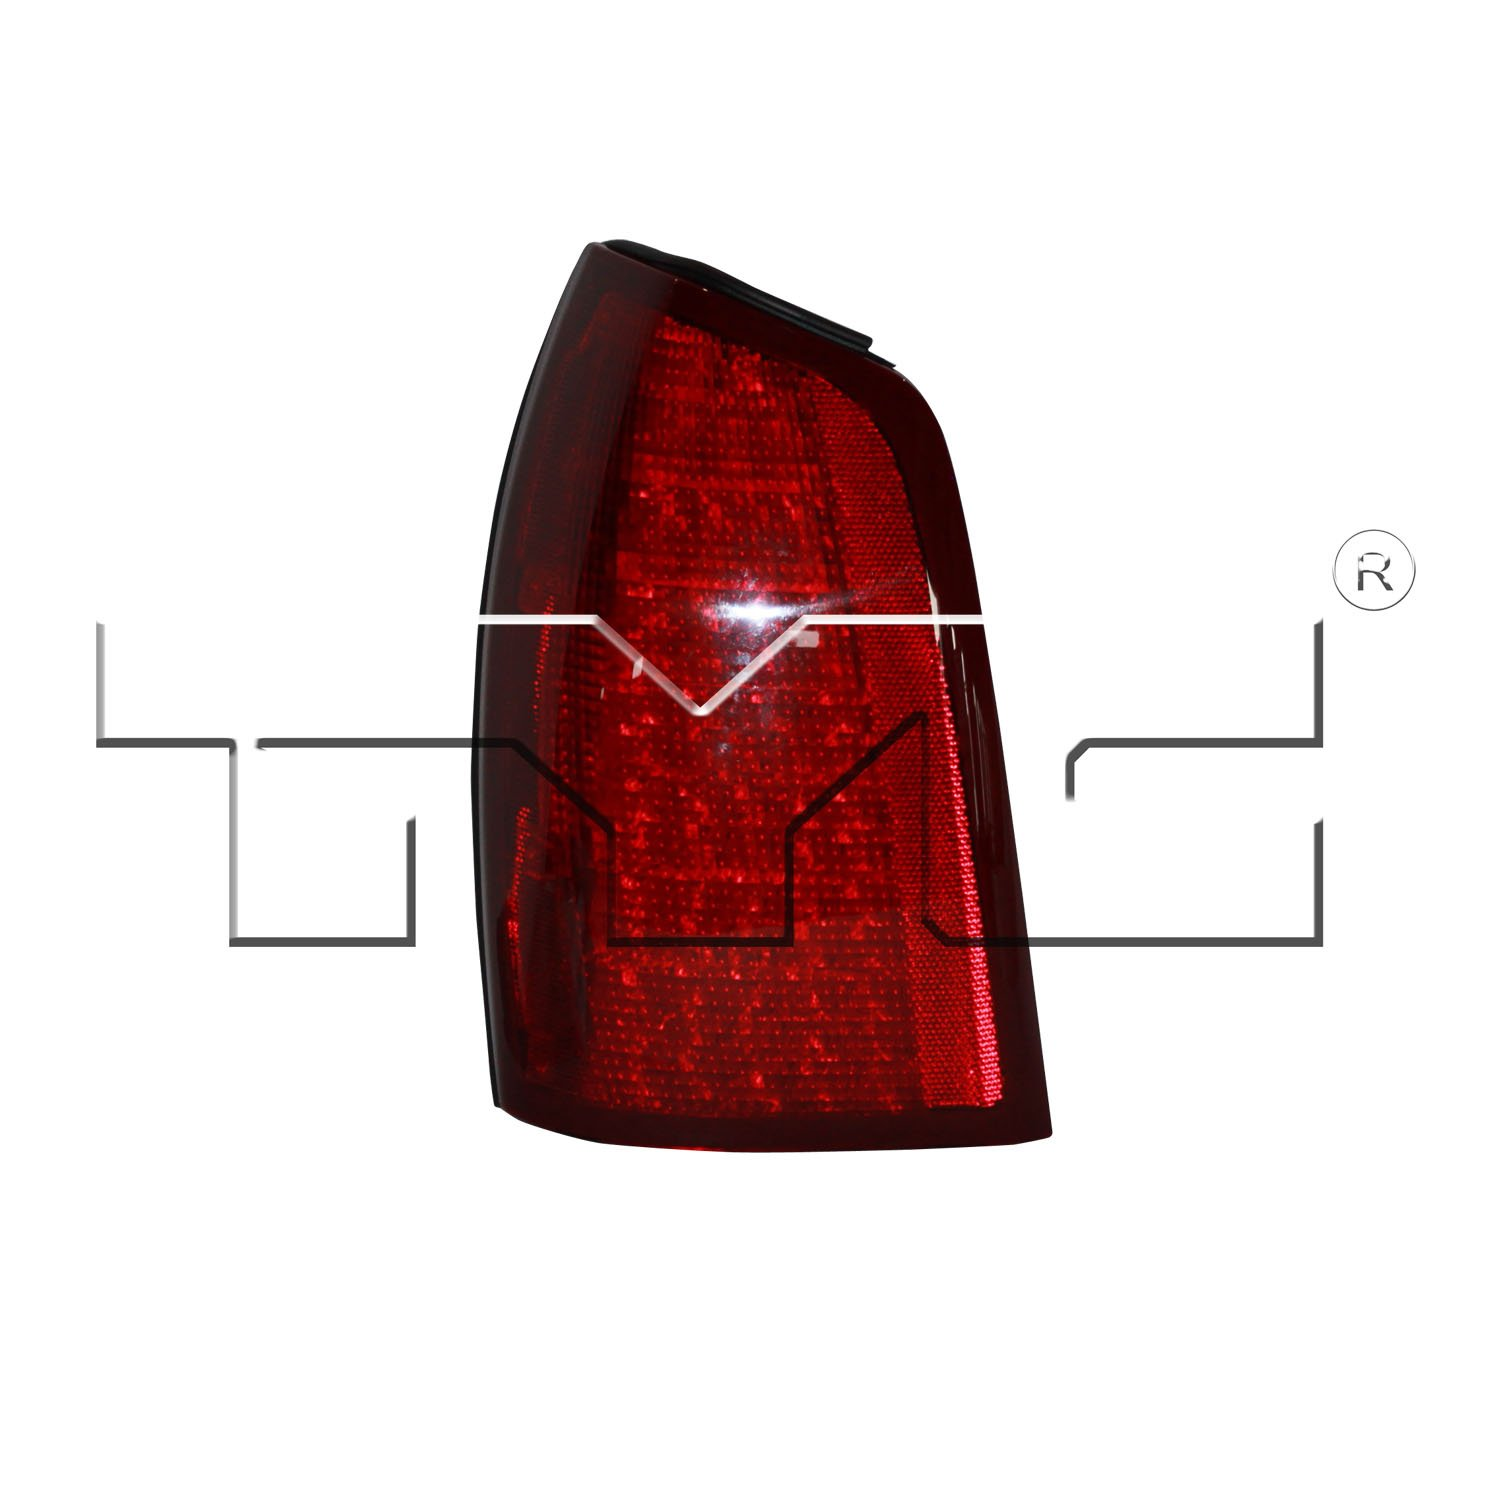 2005 Cadillac Deville Tail Light Embly Ty 11 5940 00 1